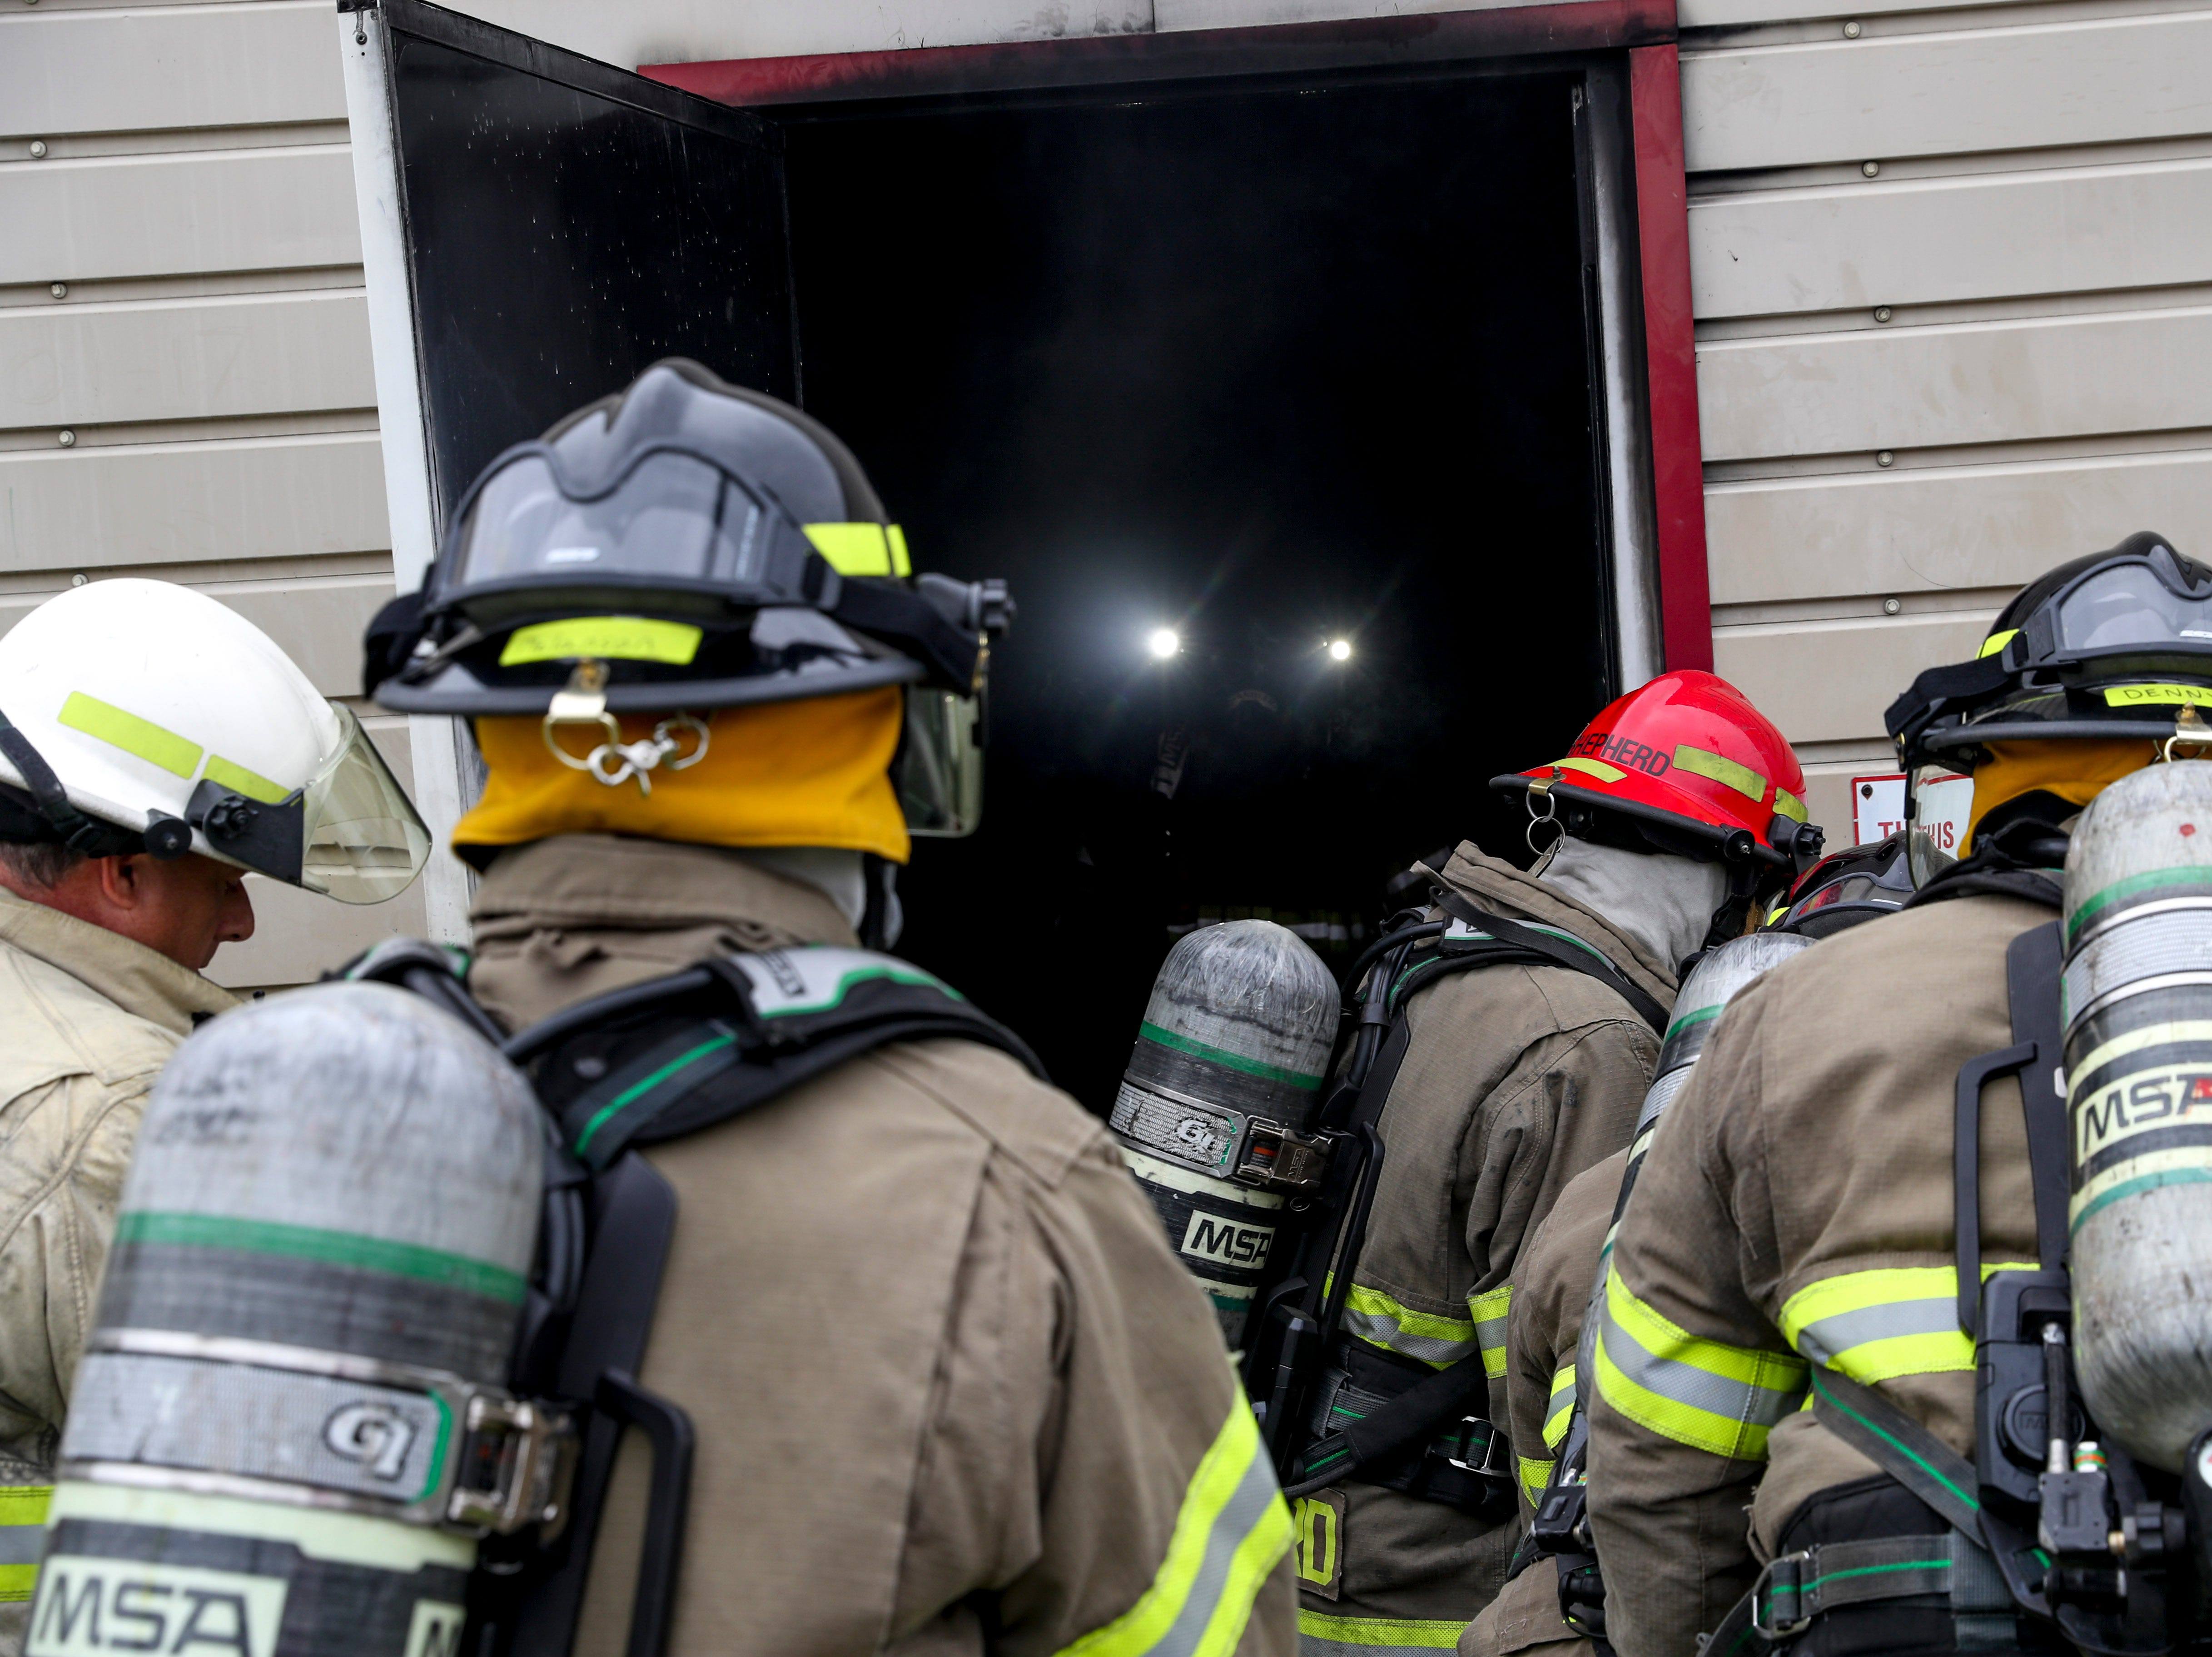 New recruits wait their turn to enter the burn building while the headlights of a Captain are seen approaching them at Clarksville Fire Rescue in Clarksville, Tenn., on Friday, May 10, 2019.